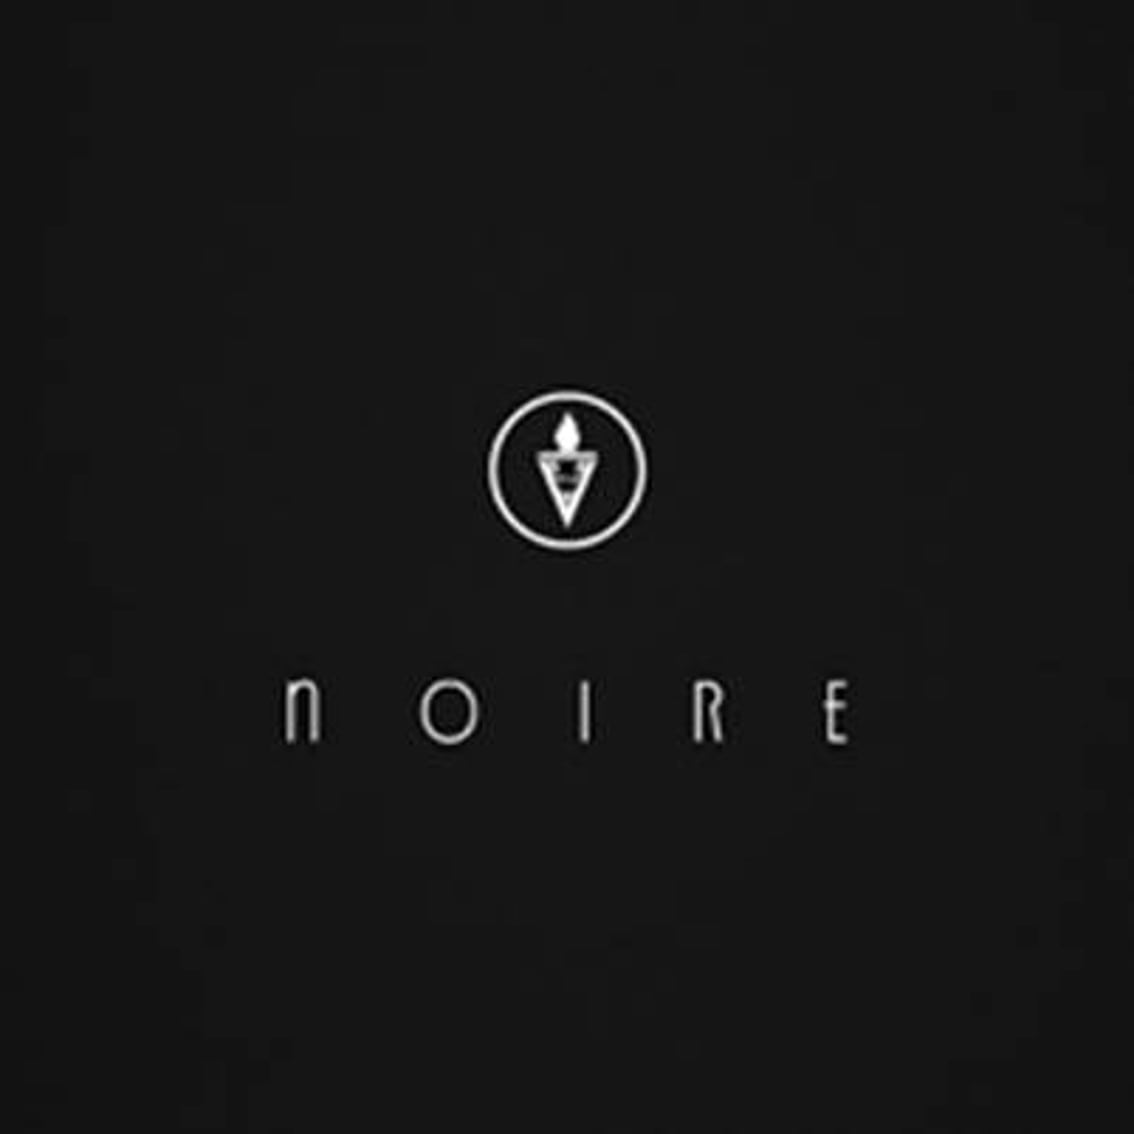 VNV Nation releases new album'Noire' as a digipak and as a limited edition double black vinyl edition